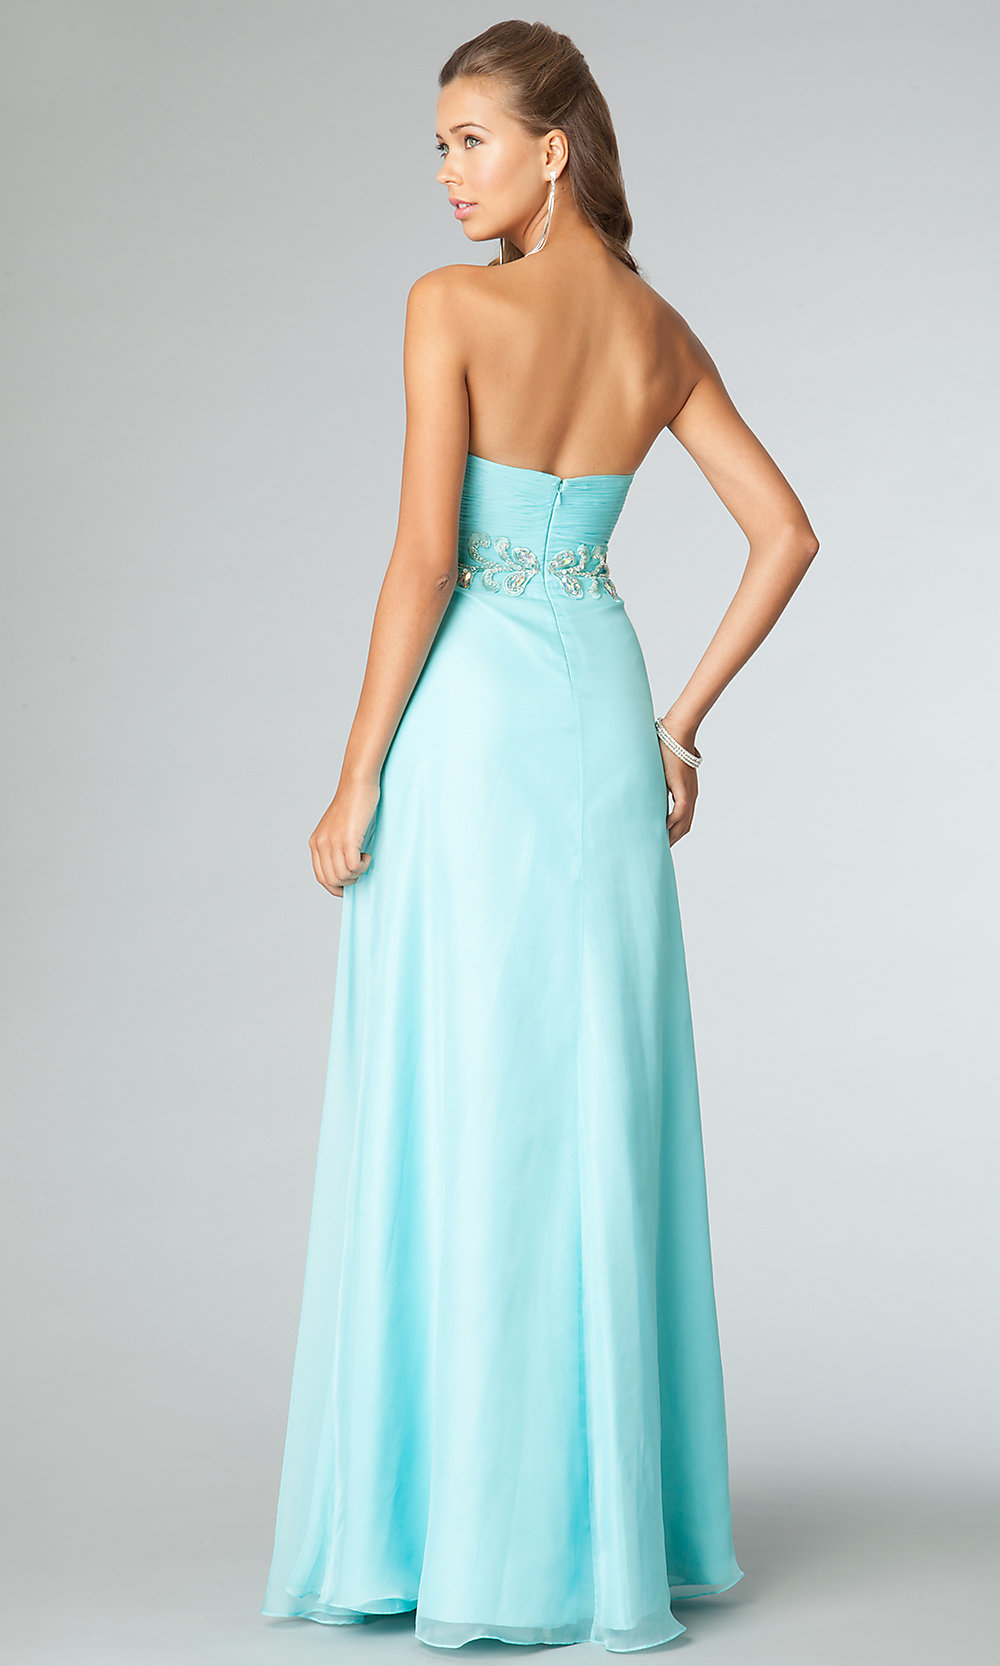 Strapless JVN by Jovani Pink Prom Gown - PromGirl